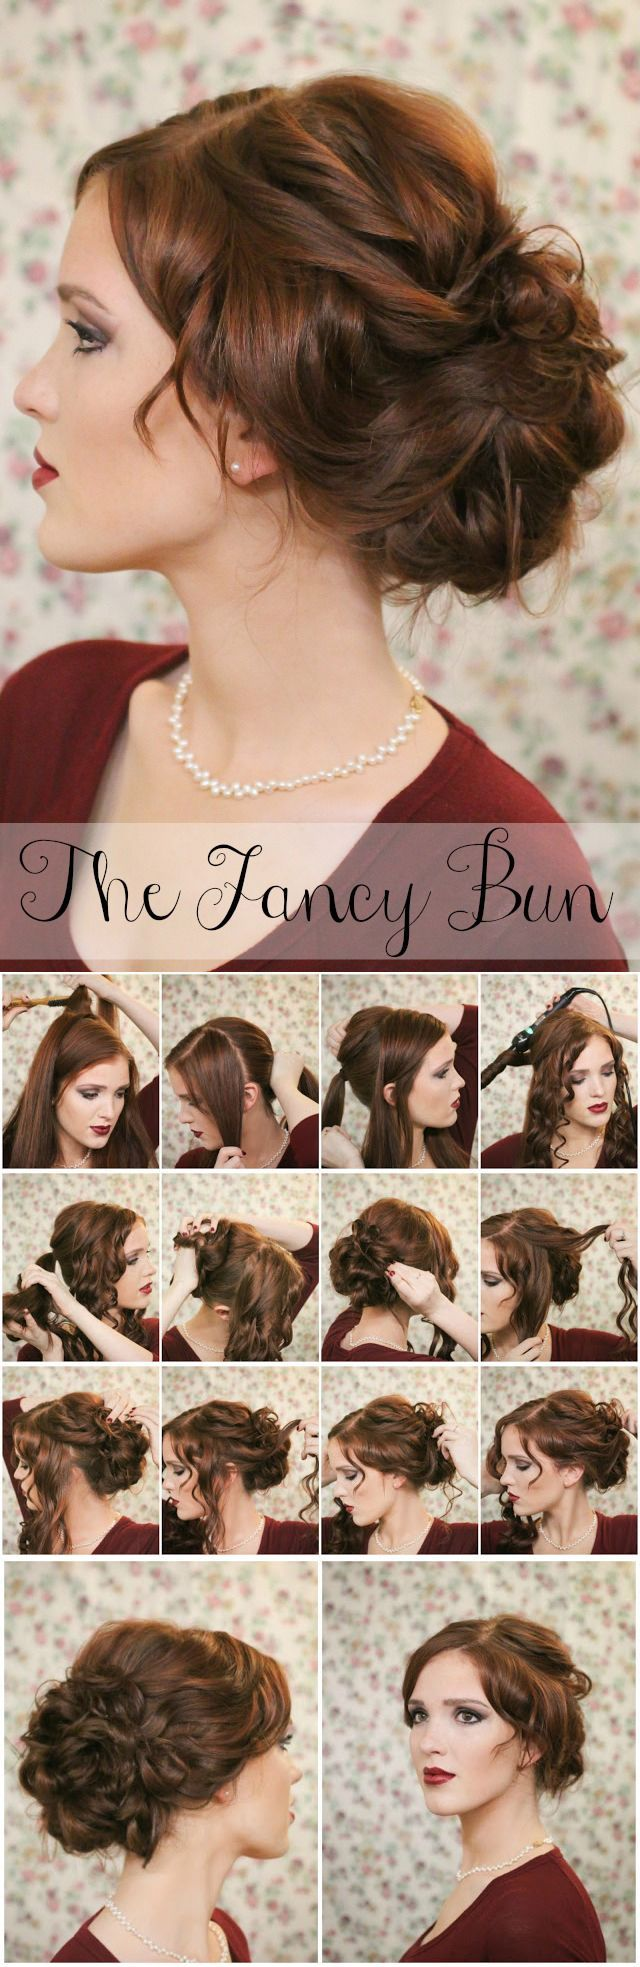 10 Hair Tutorials for Buns